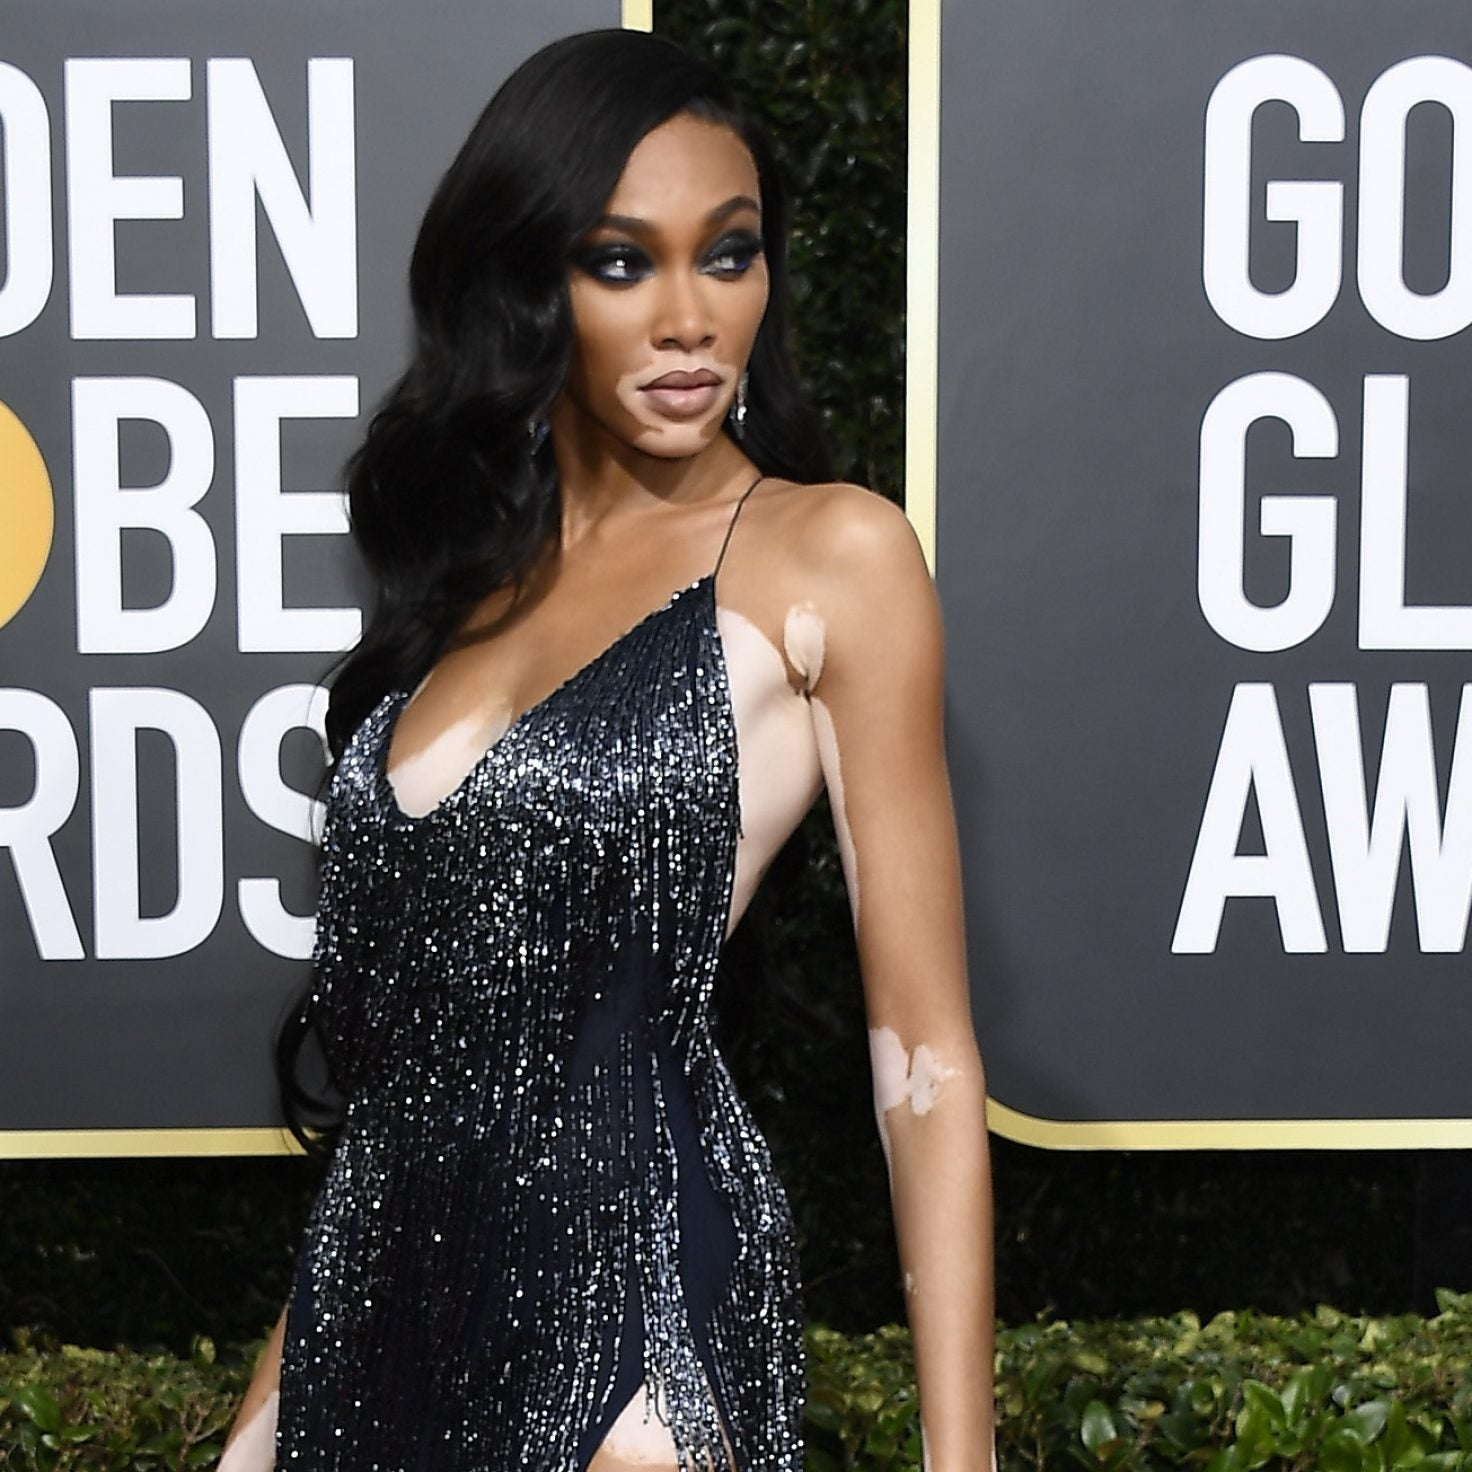 The Best Fashion Moments From The 2020 Golden Globes